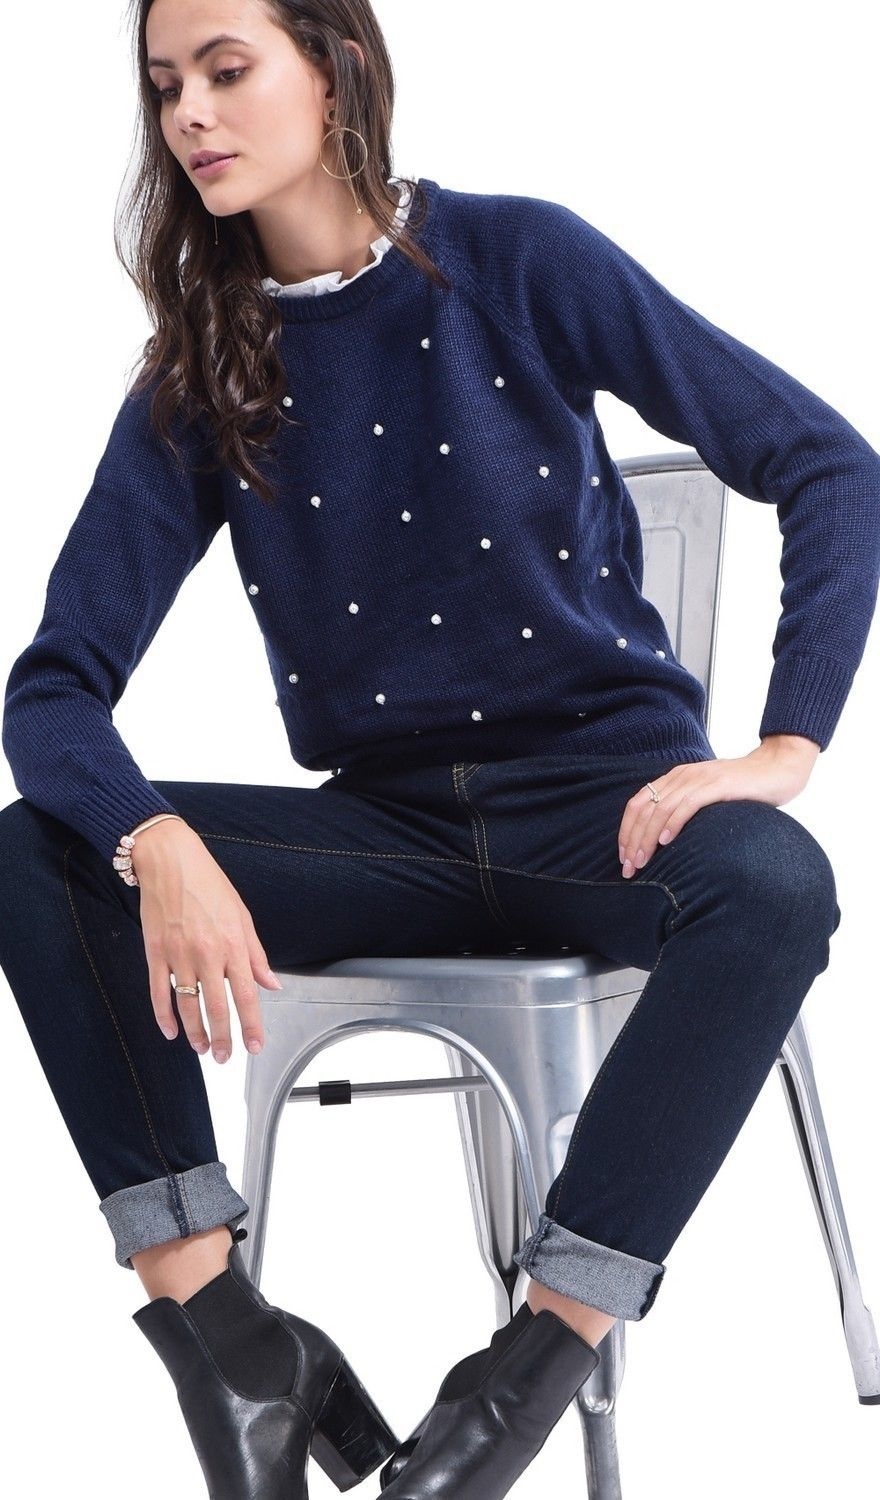 C&JO Pearl Beaded Shirt Collar Sweater in Navy